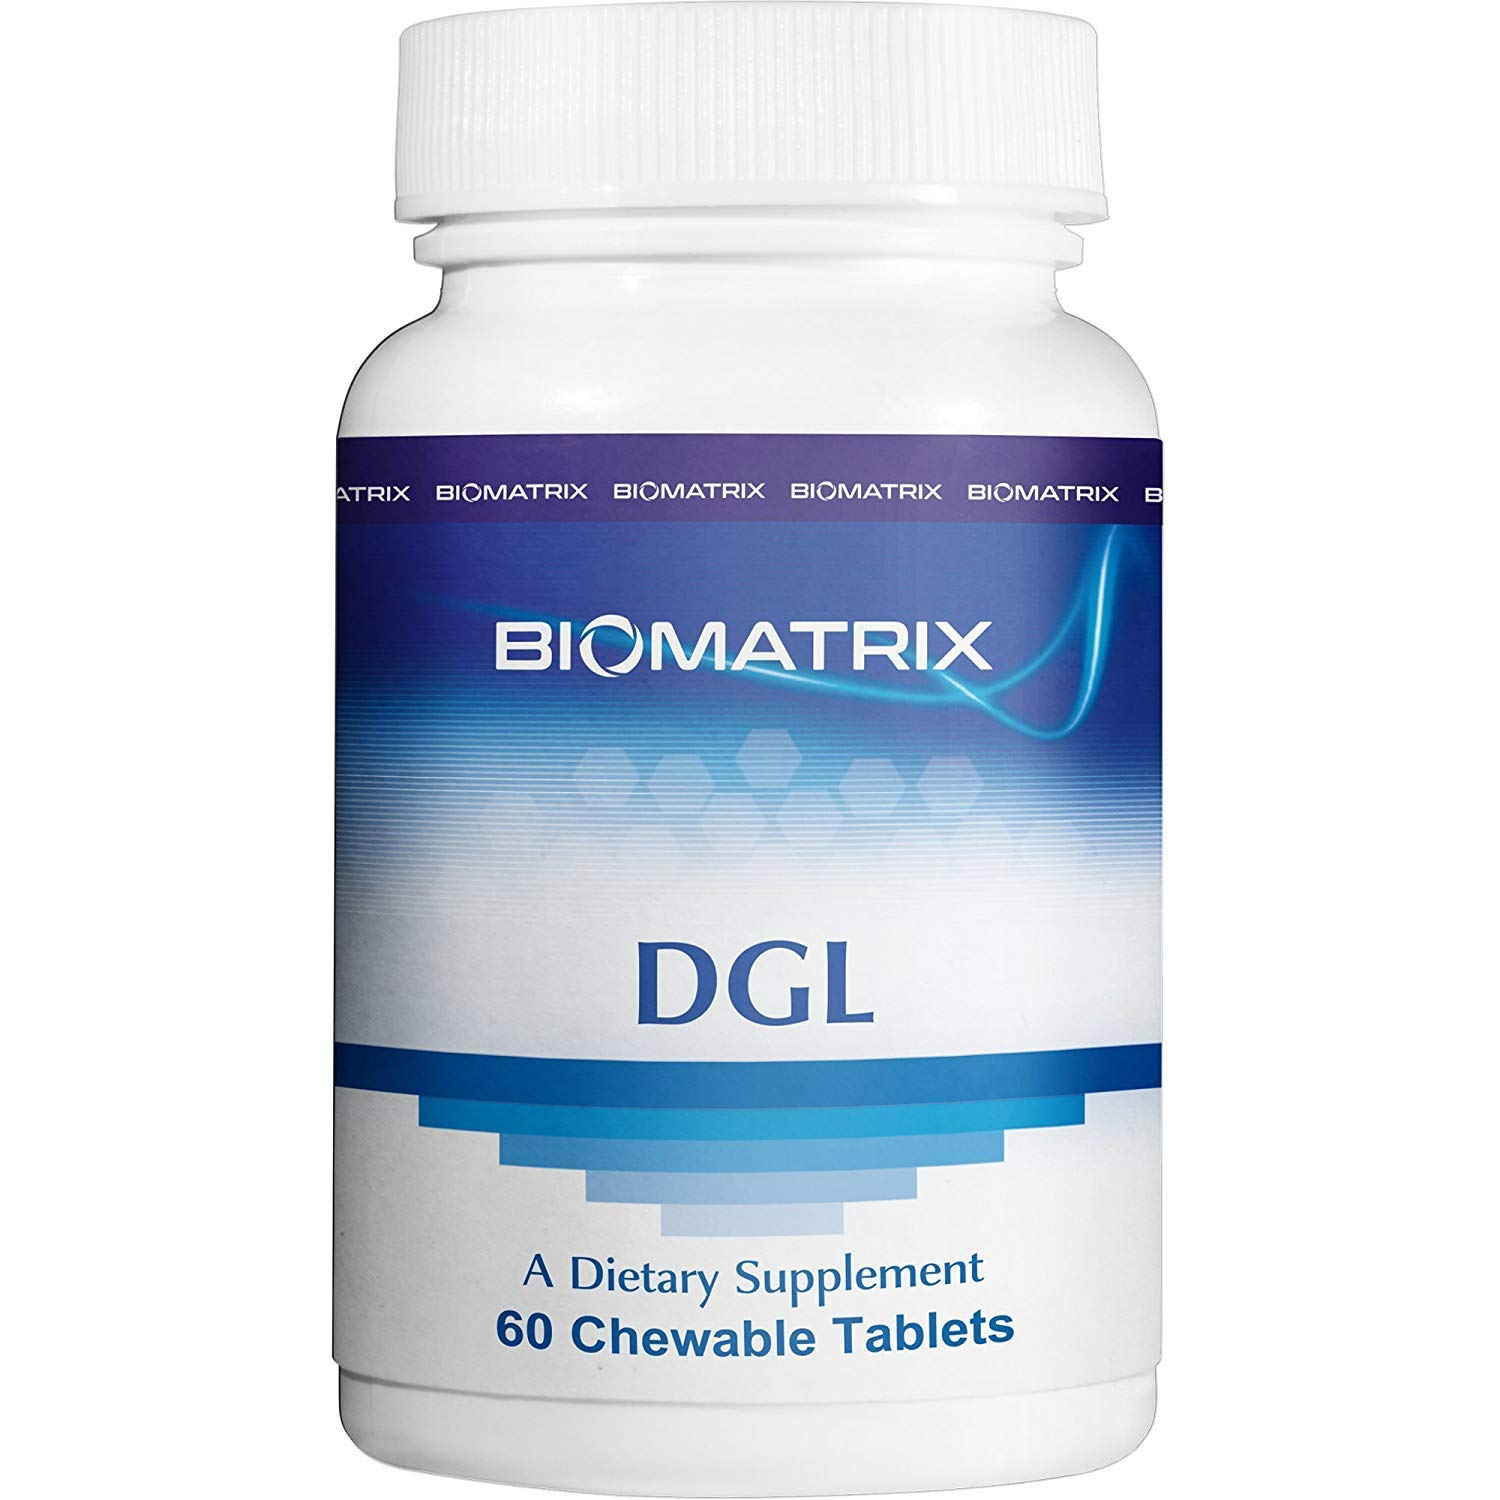 DGL (60 Tablets) - Deglycyrrhized Licorice to Help Support The Integrity of The Stomach